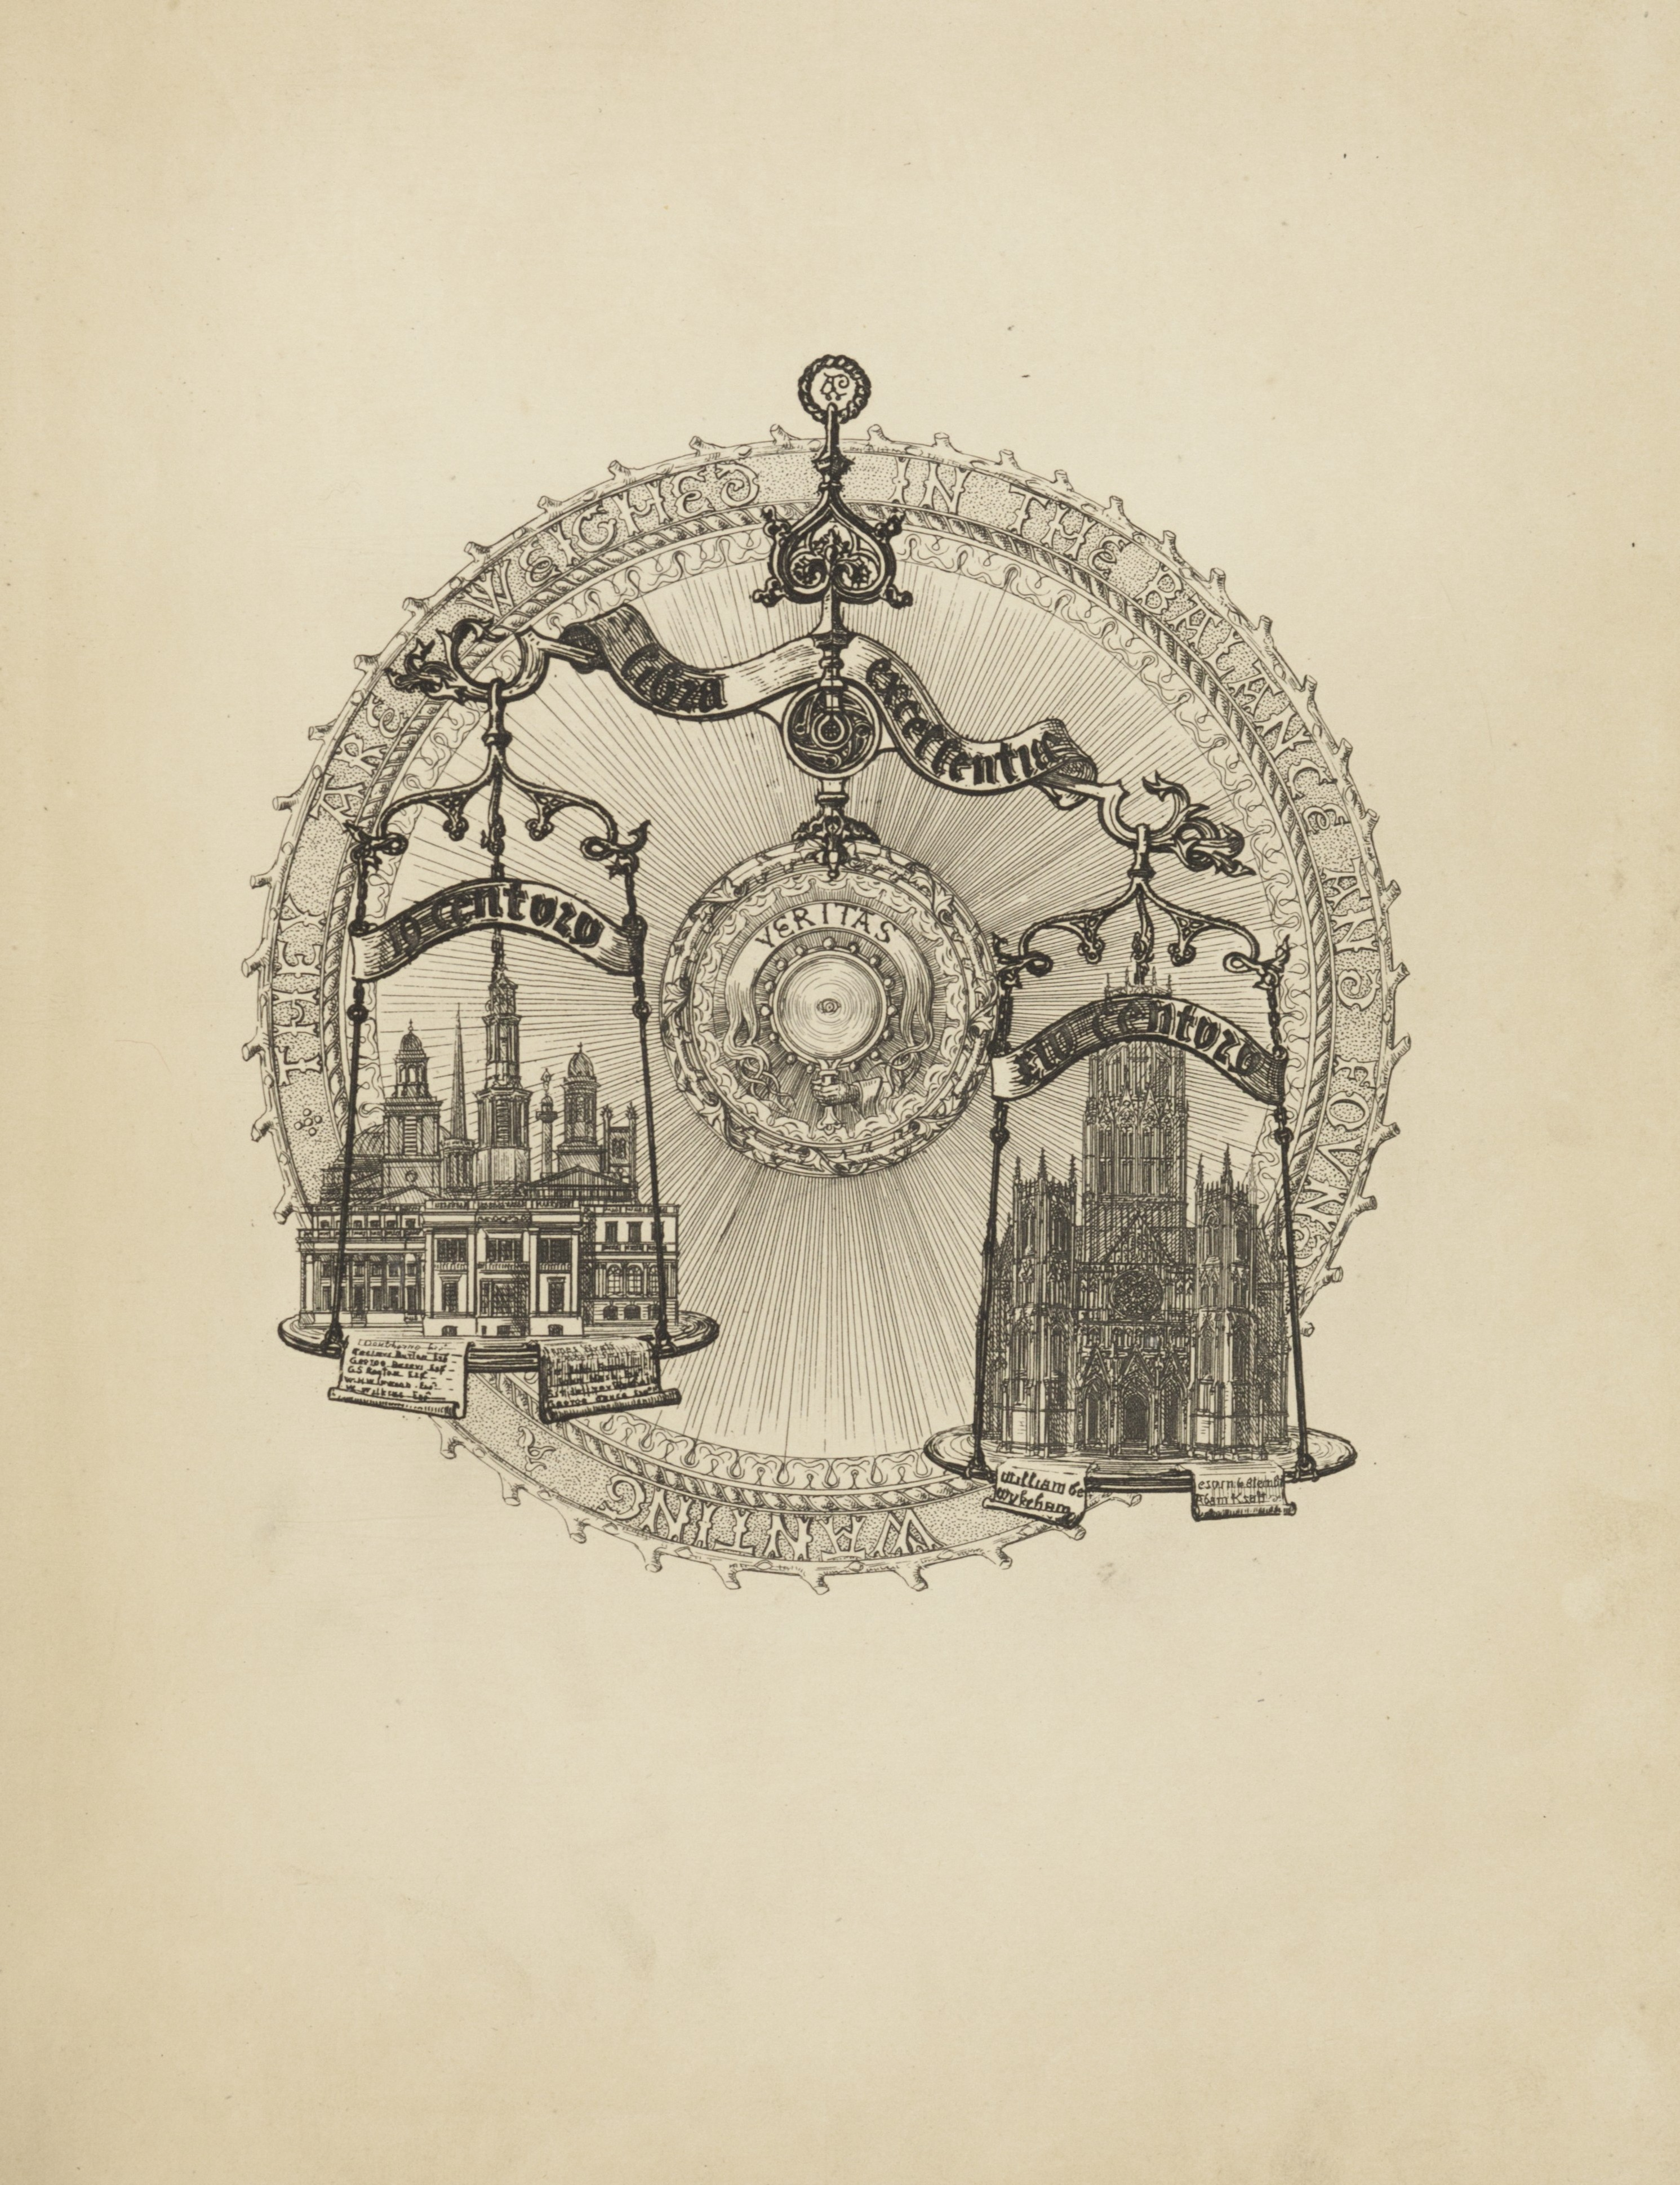 Contrasts, or a parallel between the noble edifices of the XIVth and XVth centuries, and similar buildings of the present day / by A. Welby Pugin. 1836